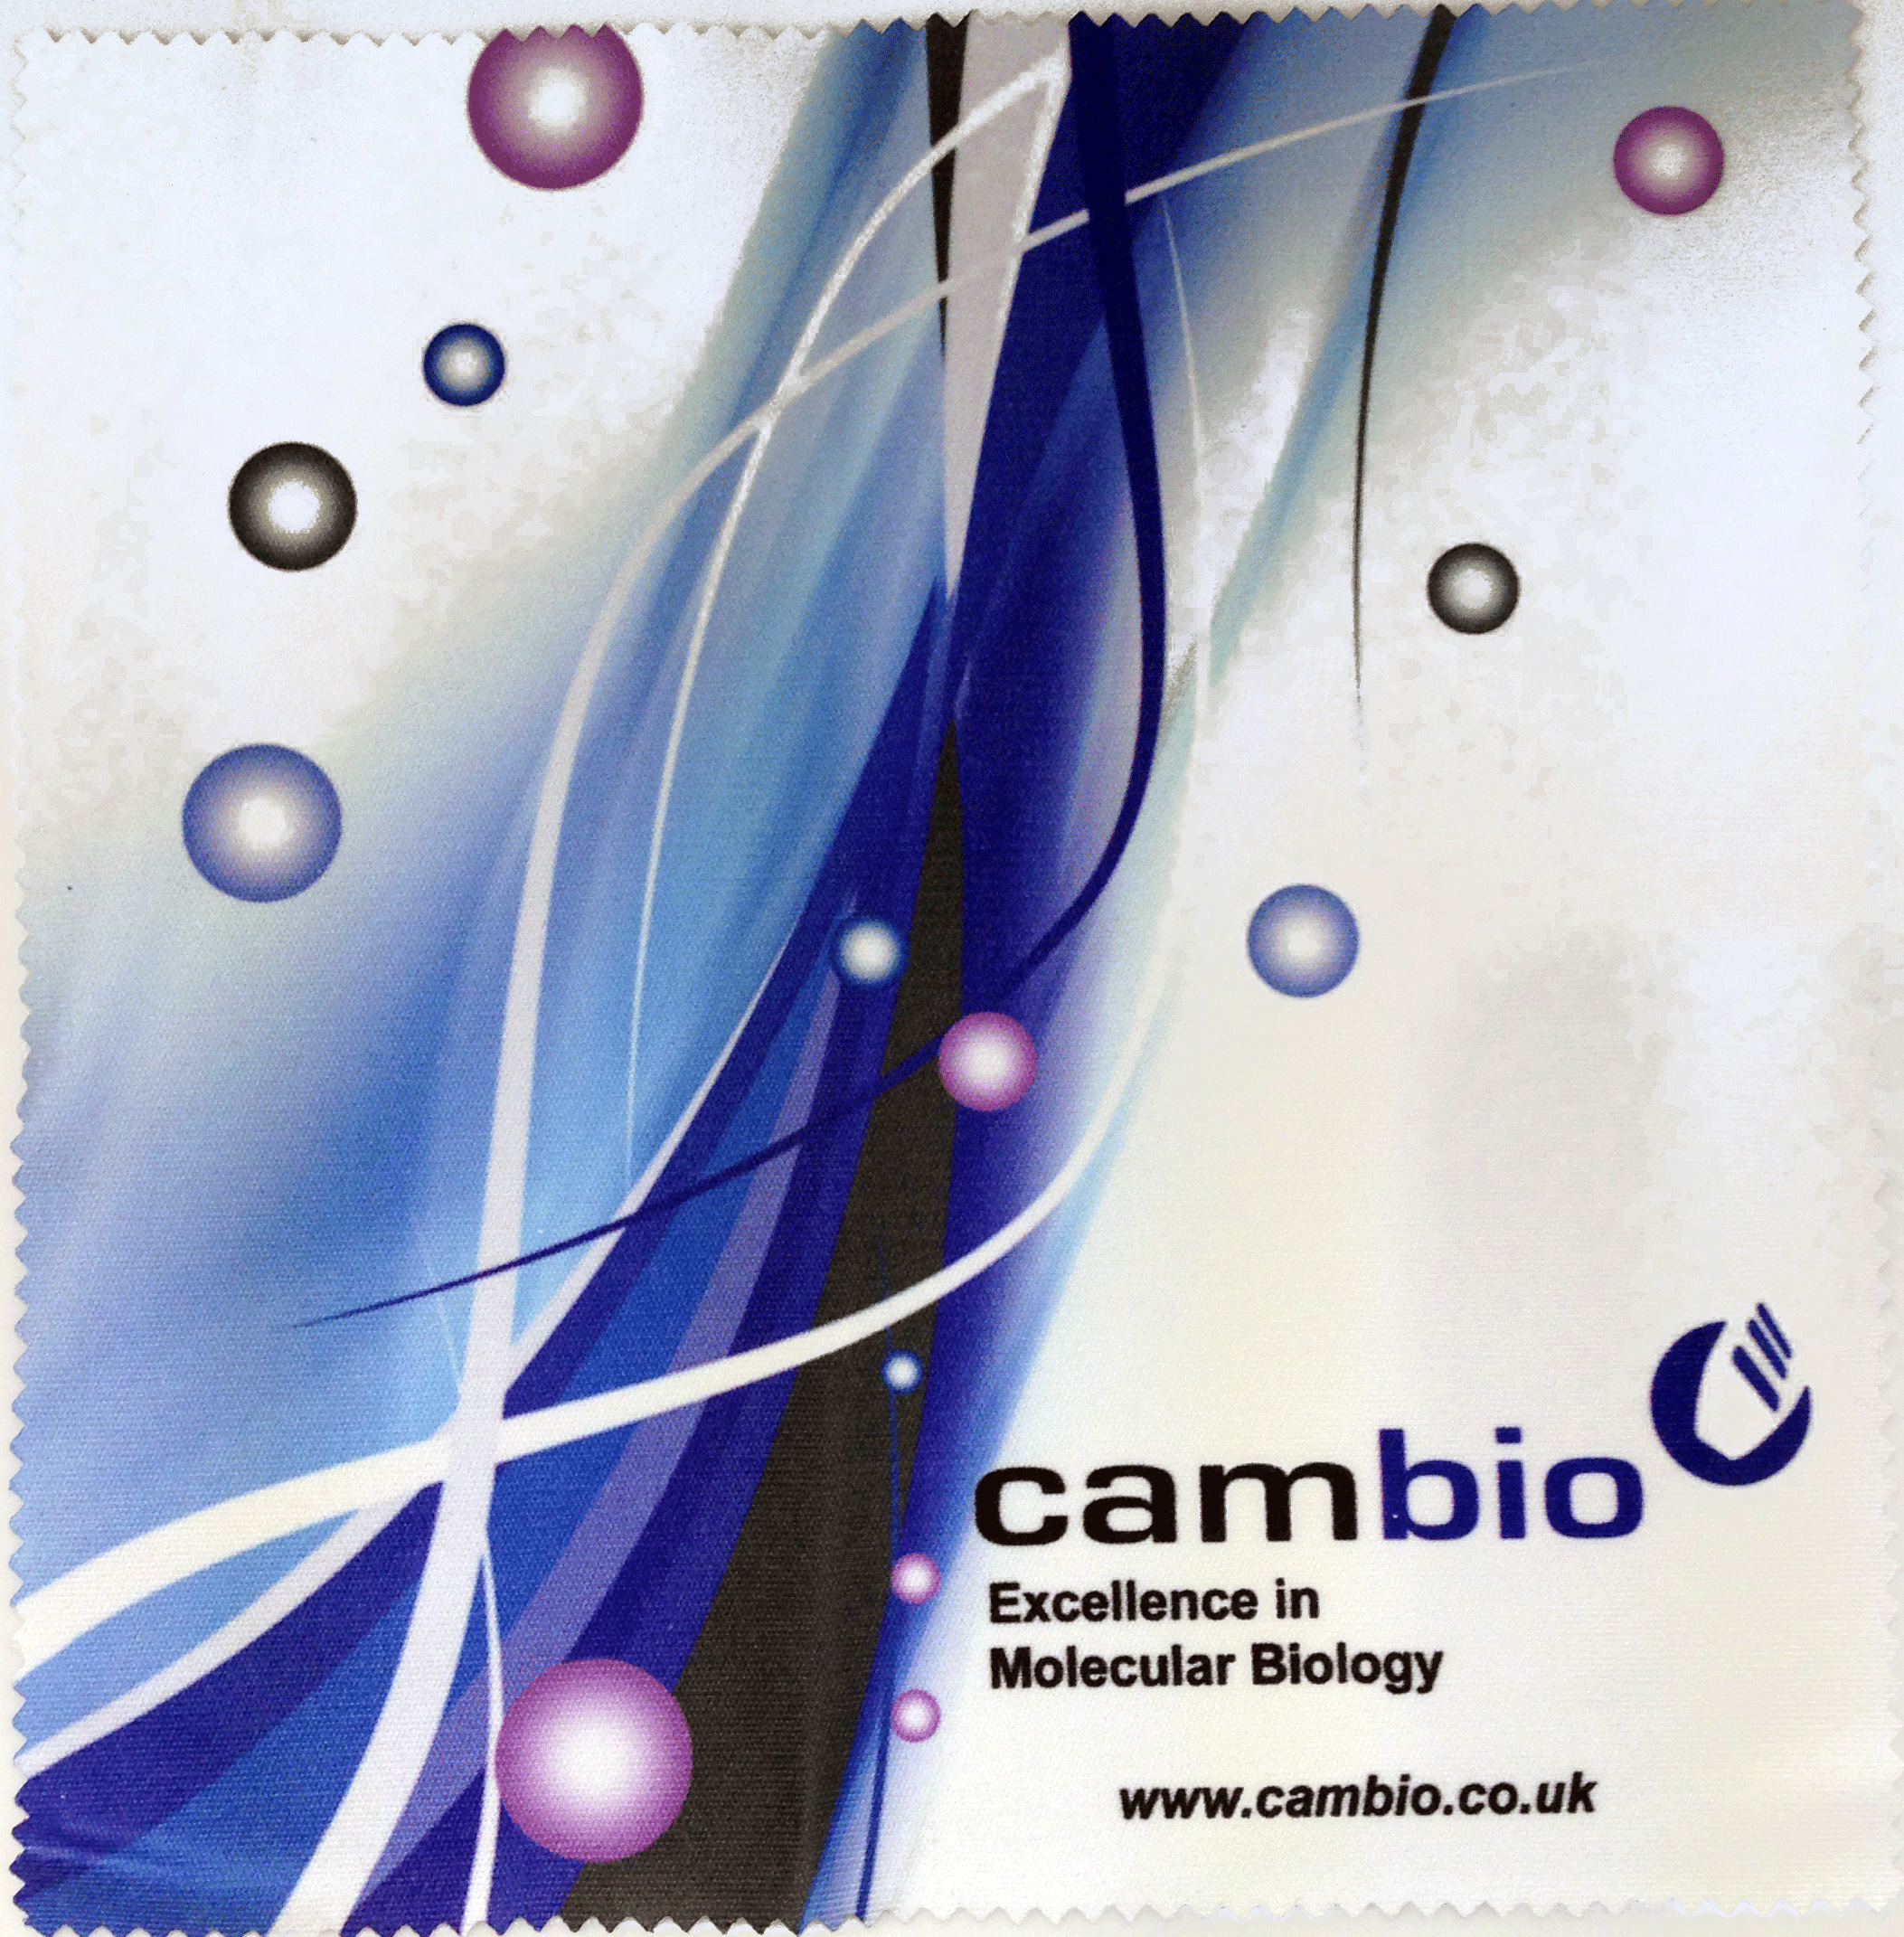 A science company using promotional microfibre cloths